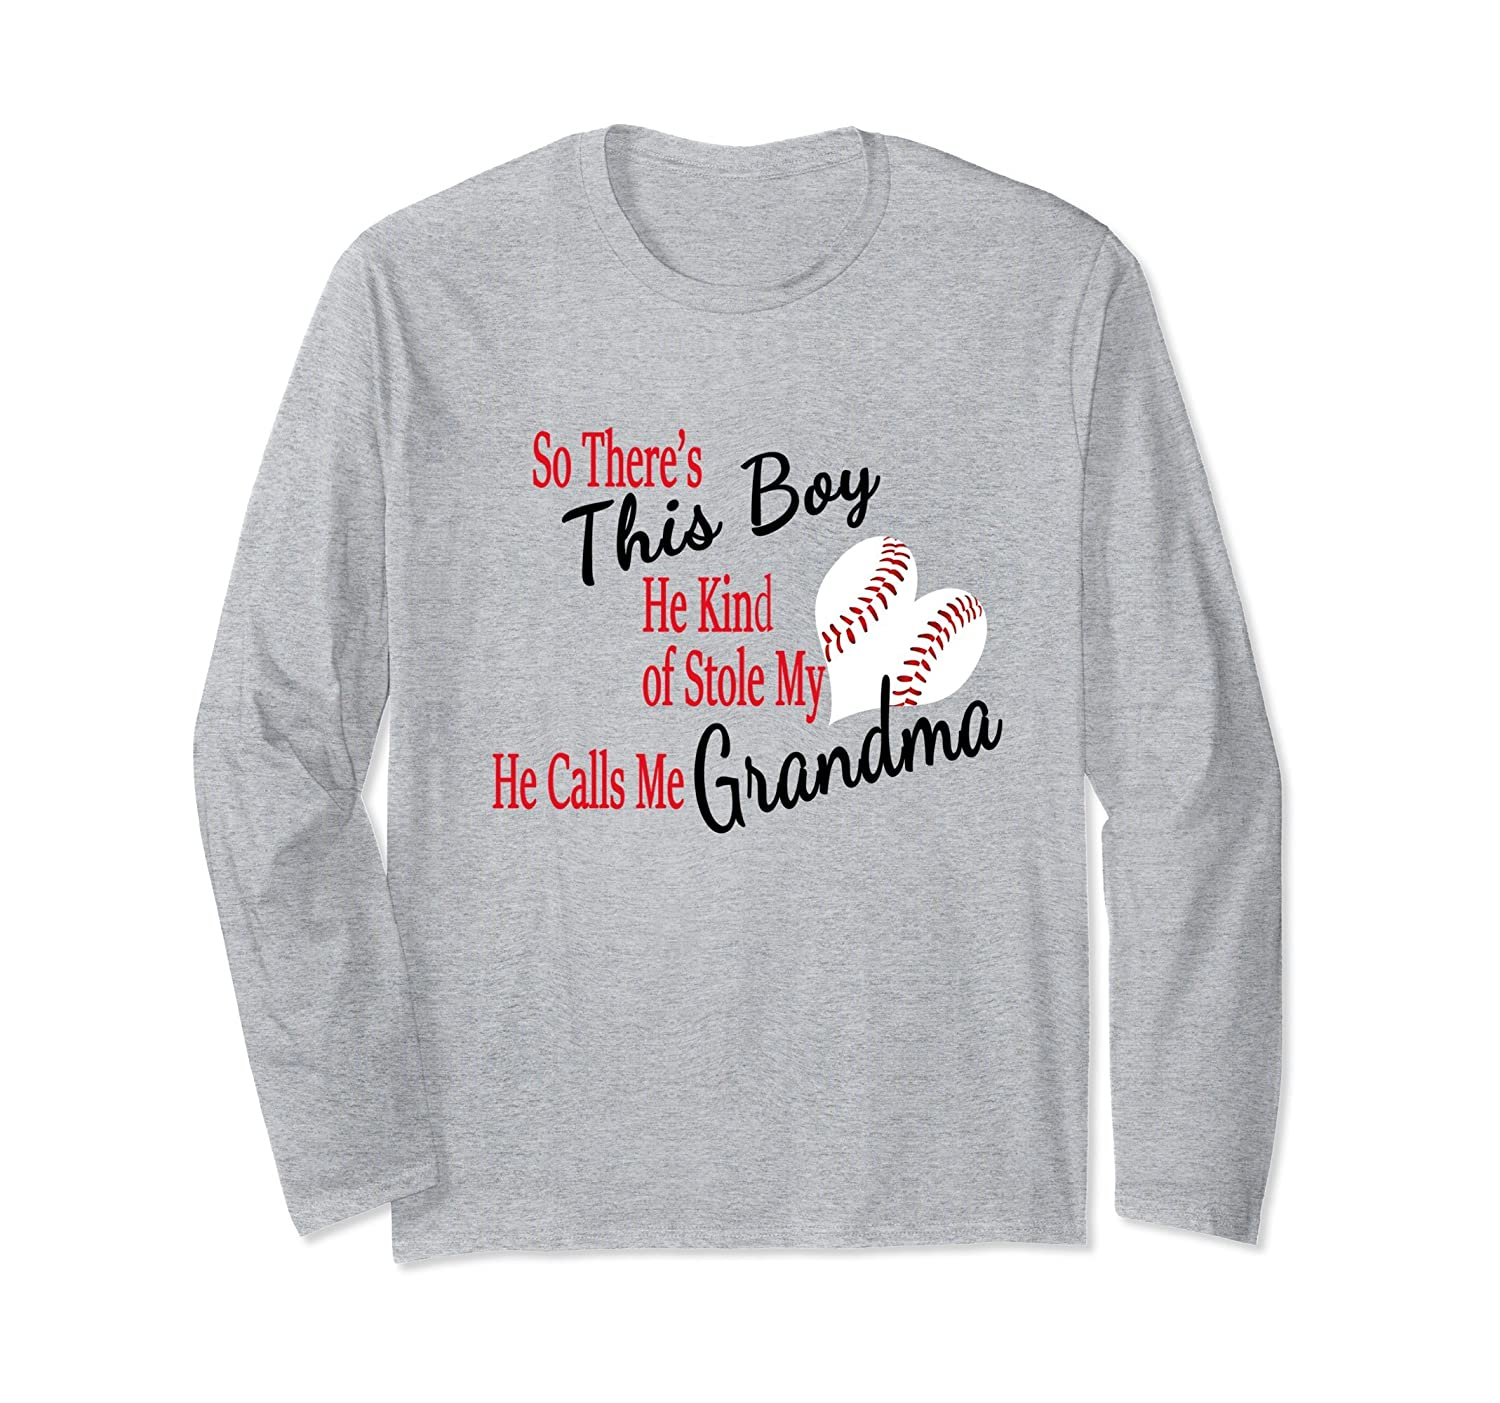 Proud Grandma Baseball Boy Stole My Heart Long Sleeve Tee-TH